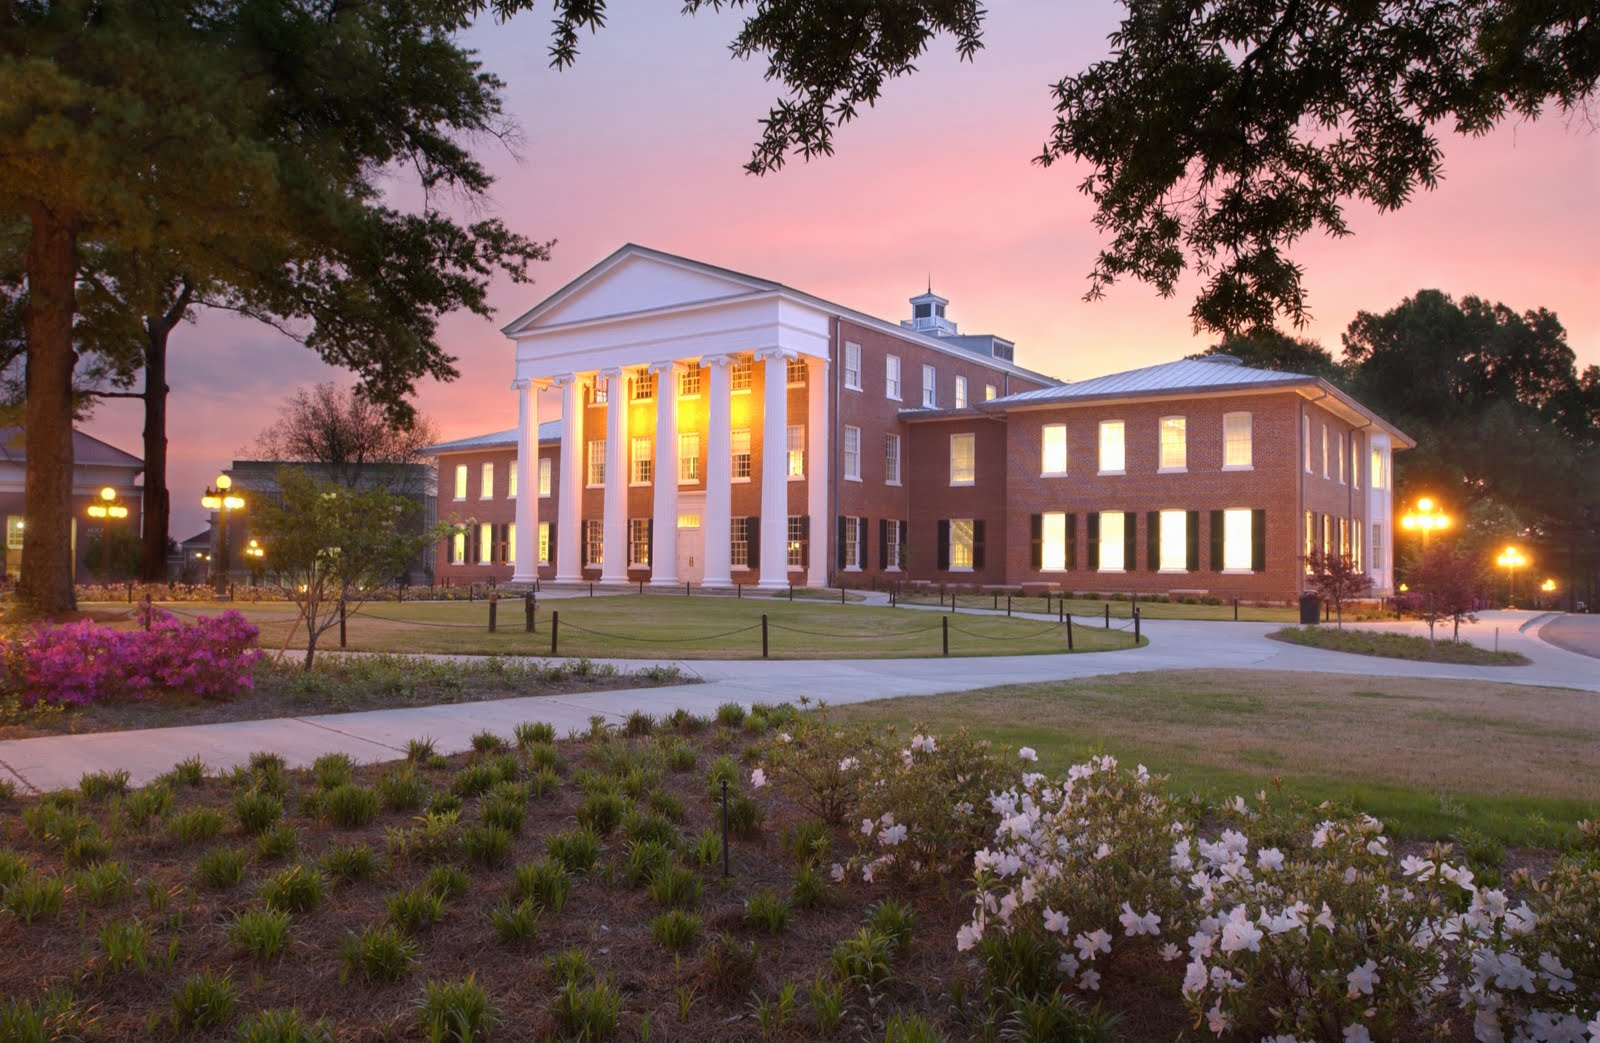 30 Most Beautiful College Campuses in the South - Best